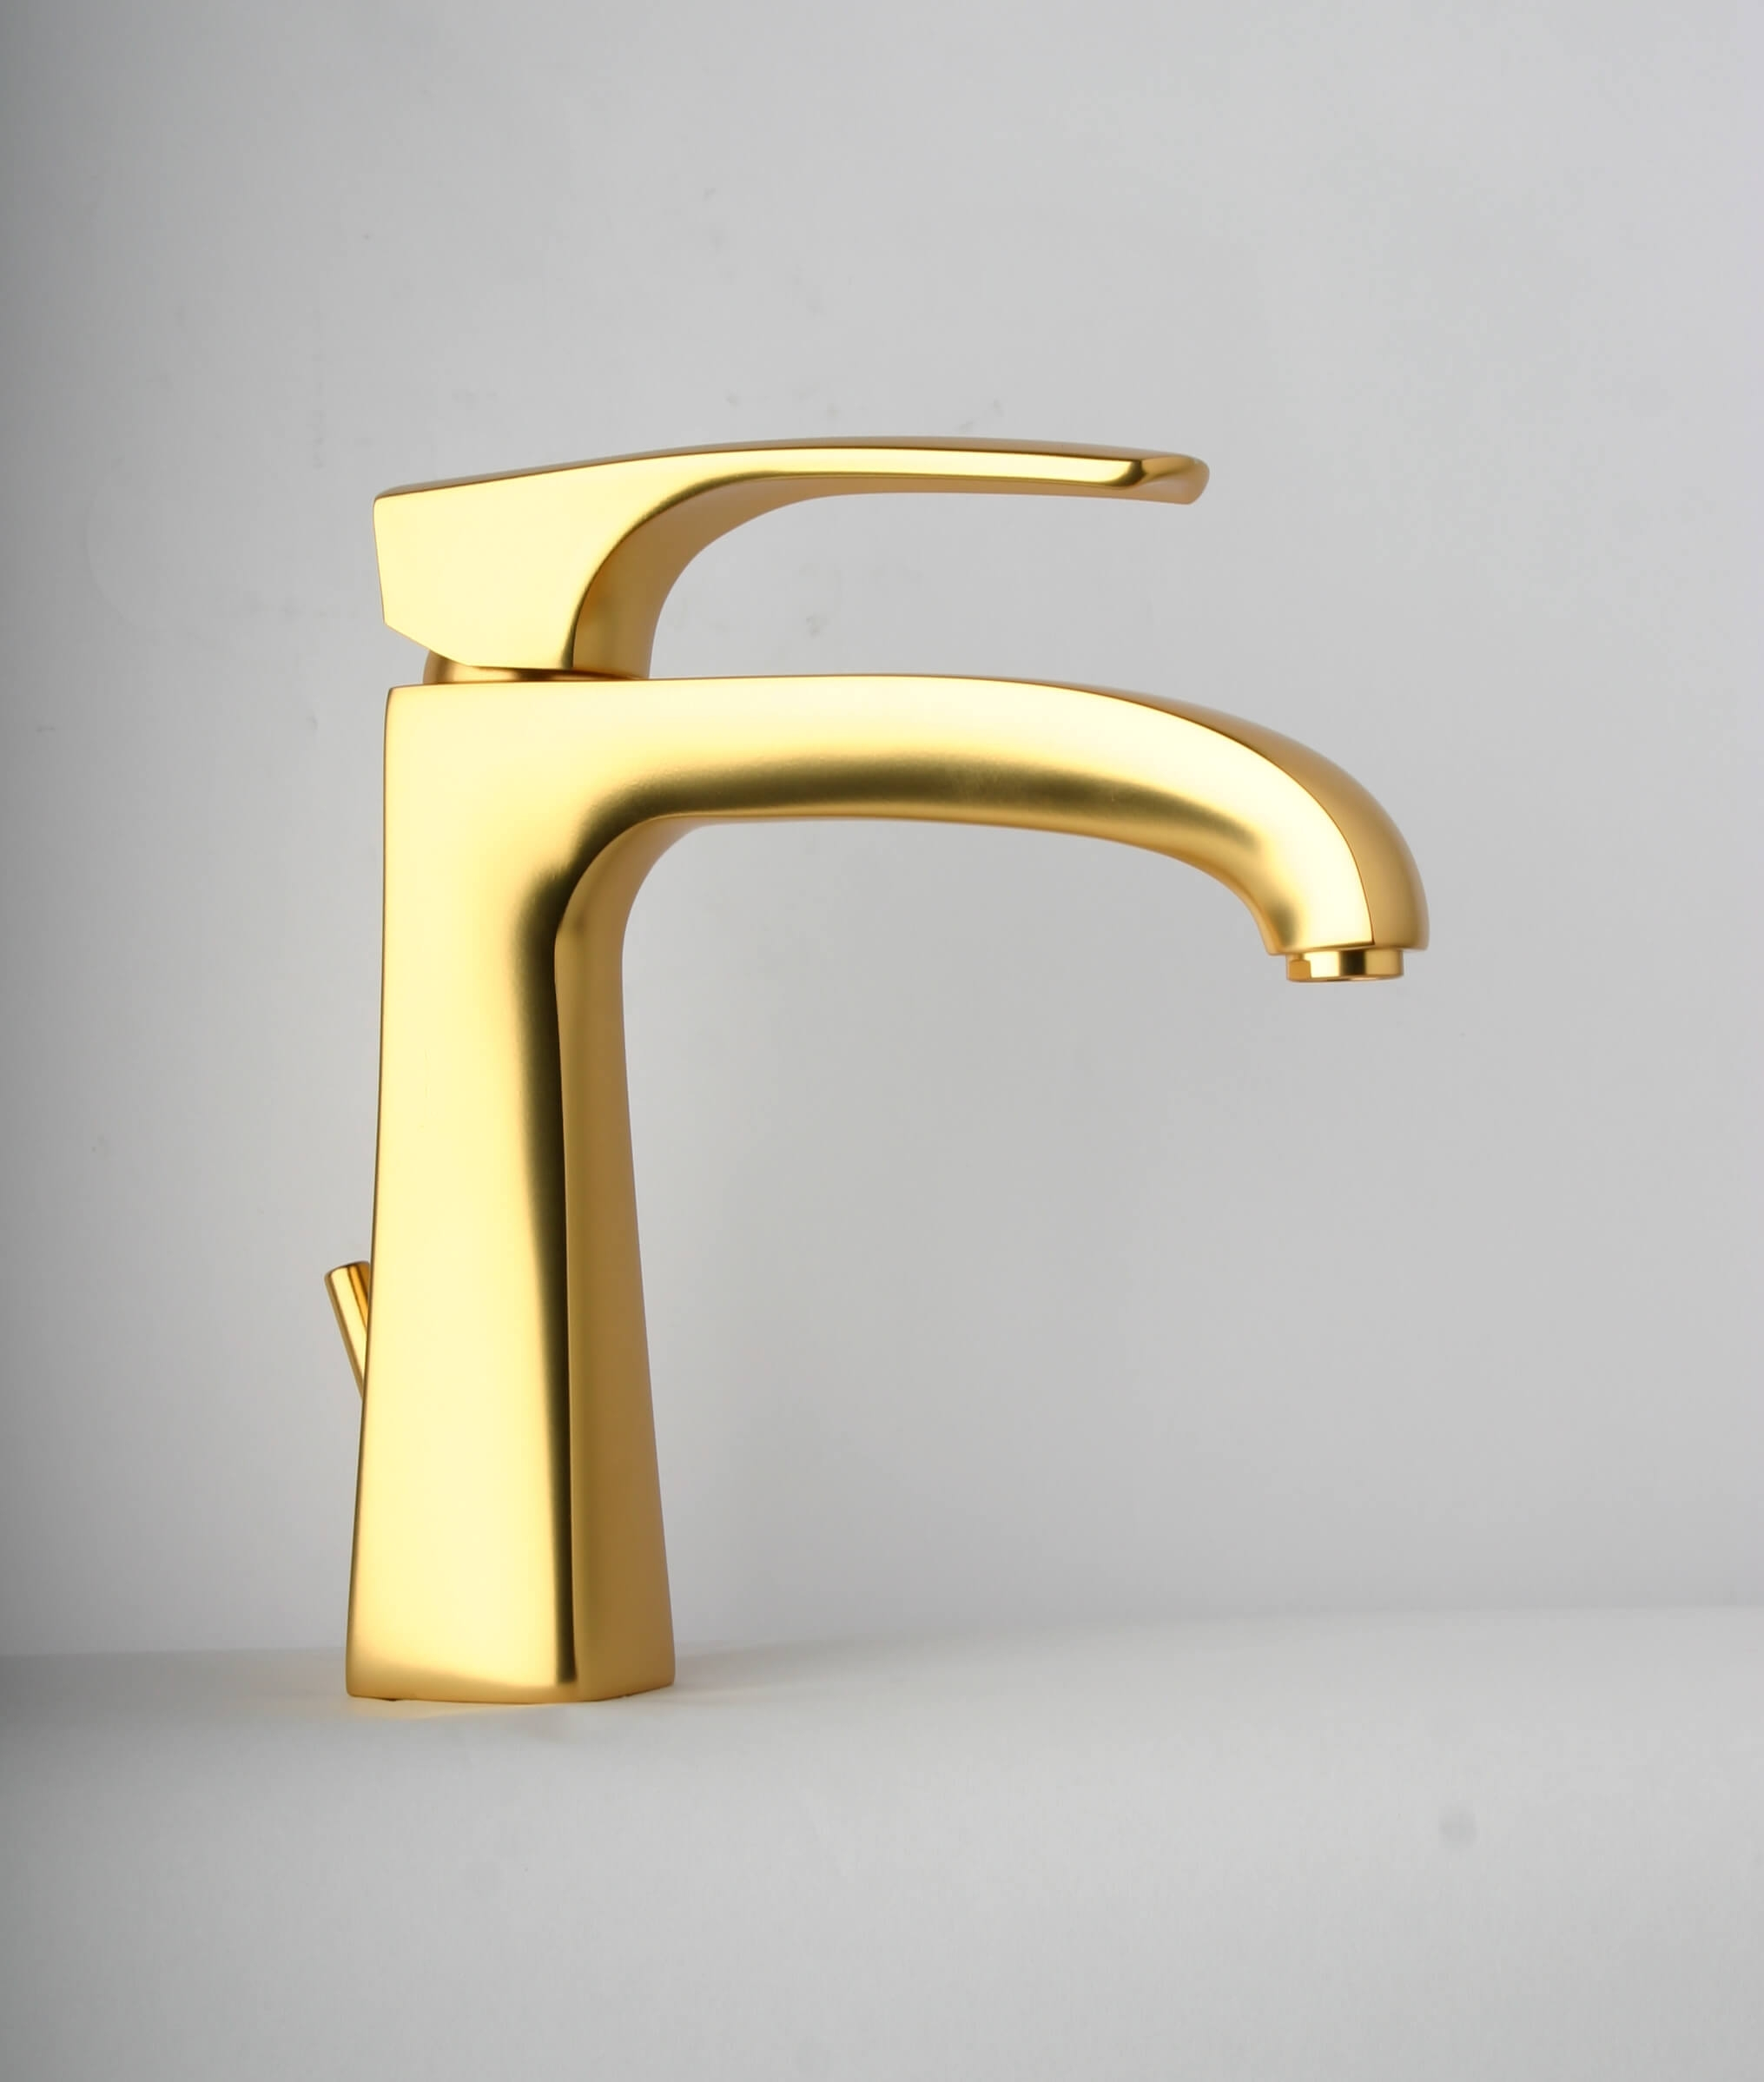 la toscana bathroom faucets la toscana bathroom faucets latoscana paini bathroom faucets wave plumbing 2031 x 2397